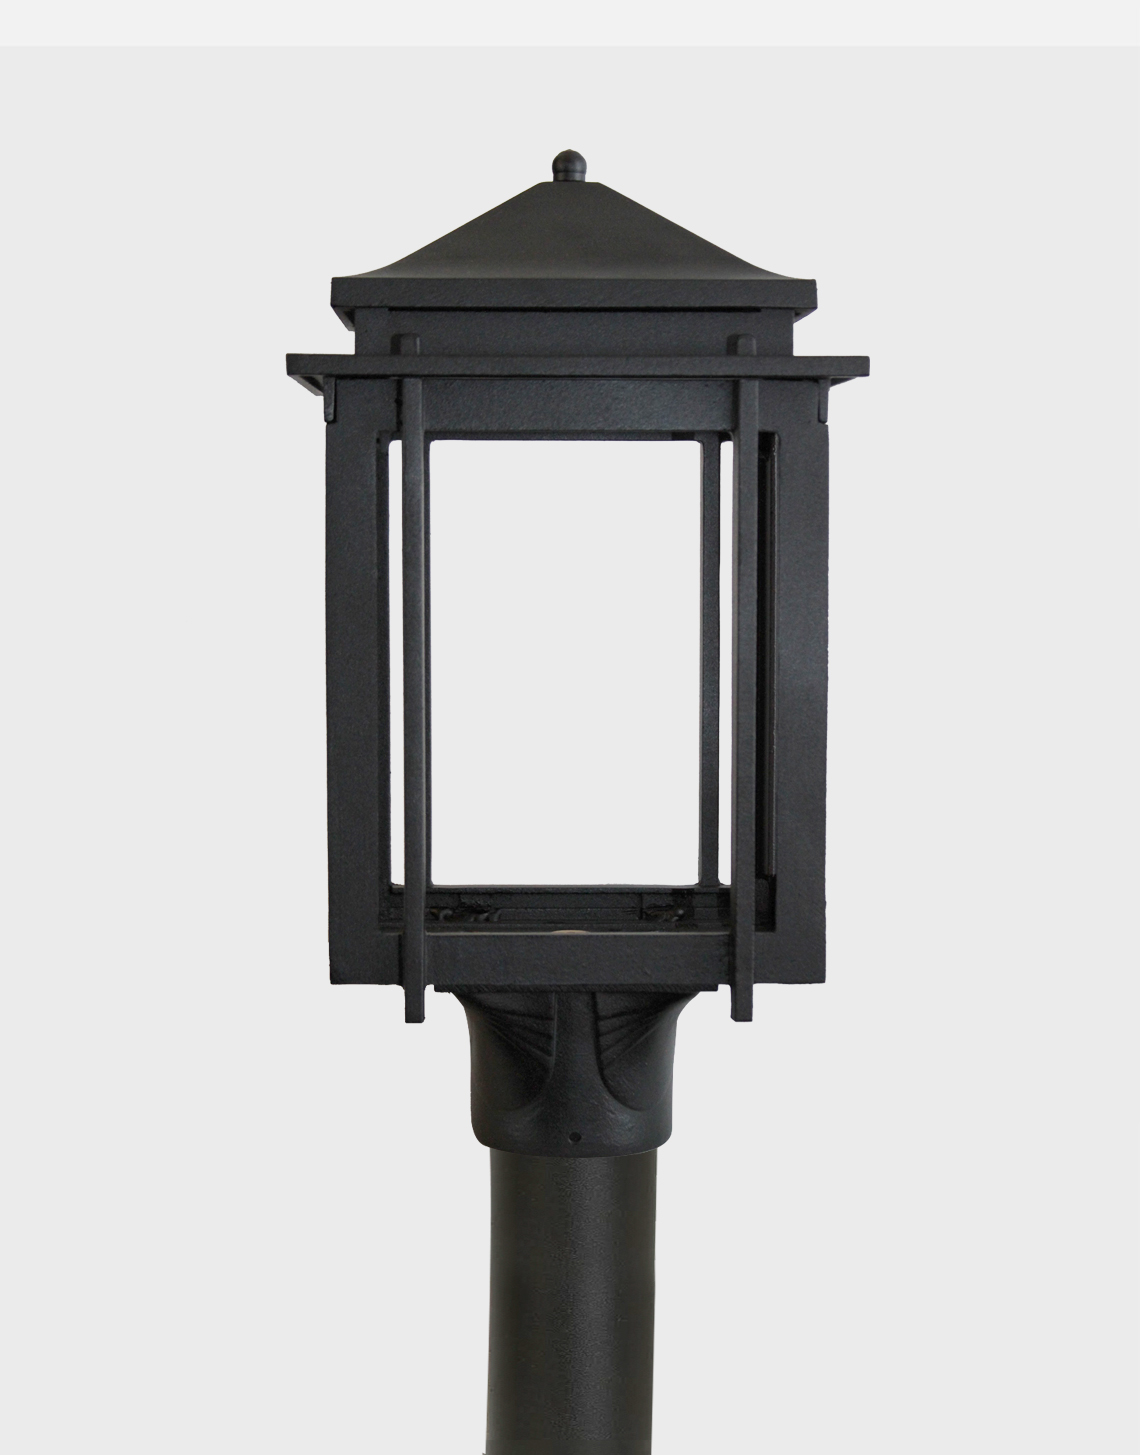 Craftsman Model 1100 Residential Cast Aluminum Gas or Electric Lantern